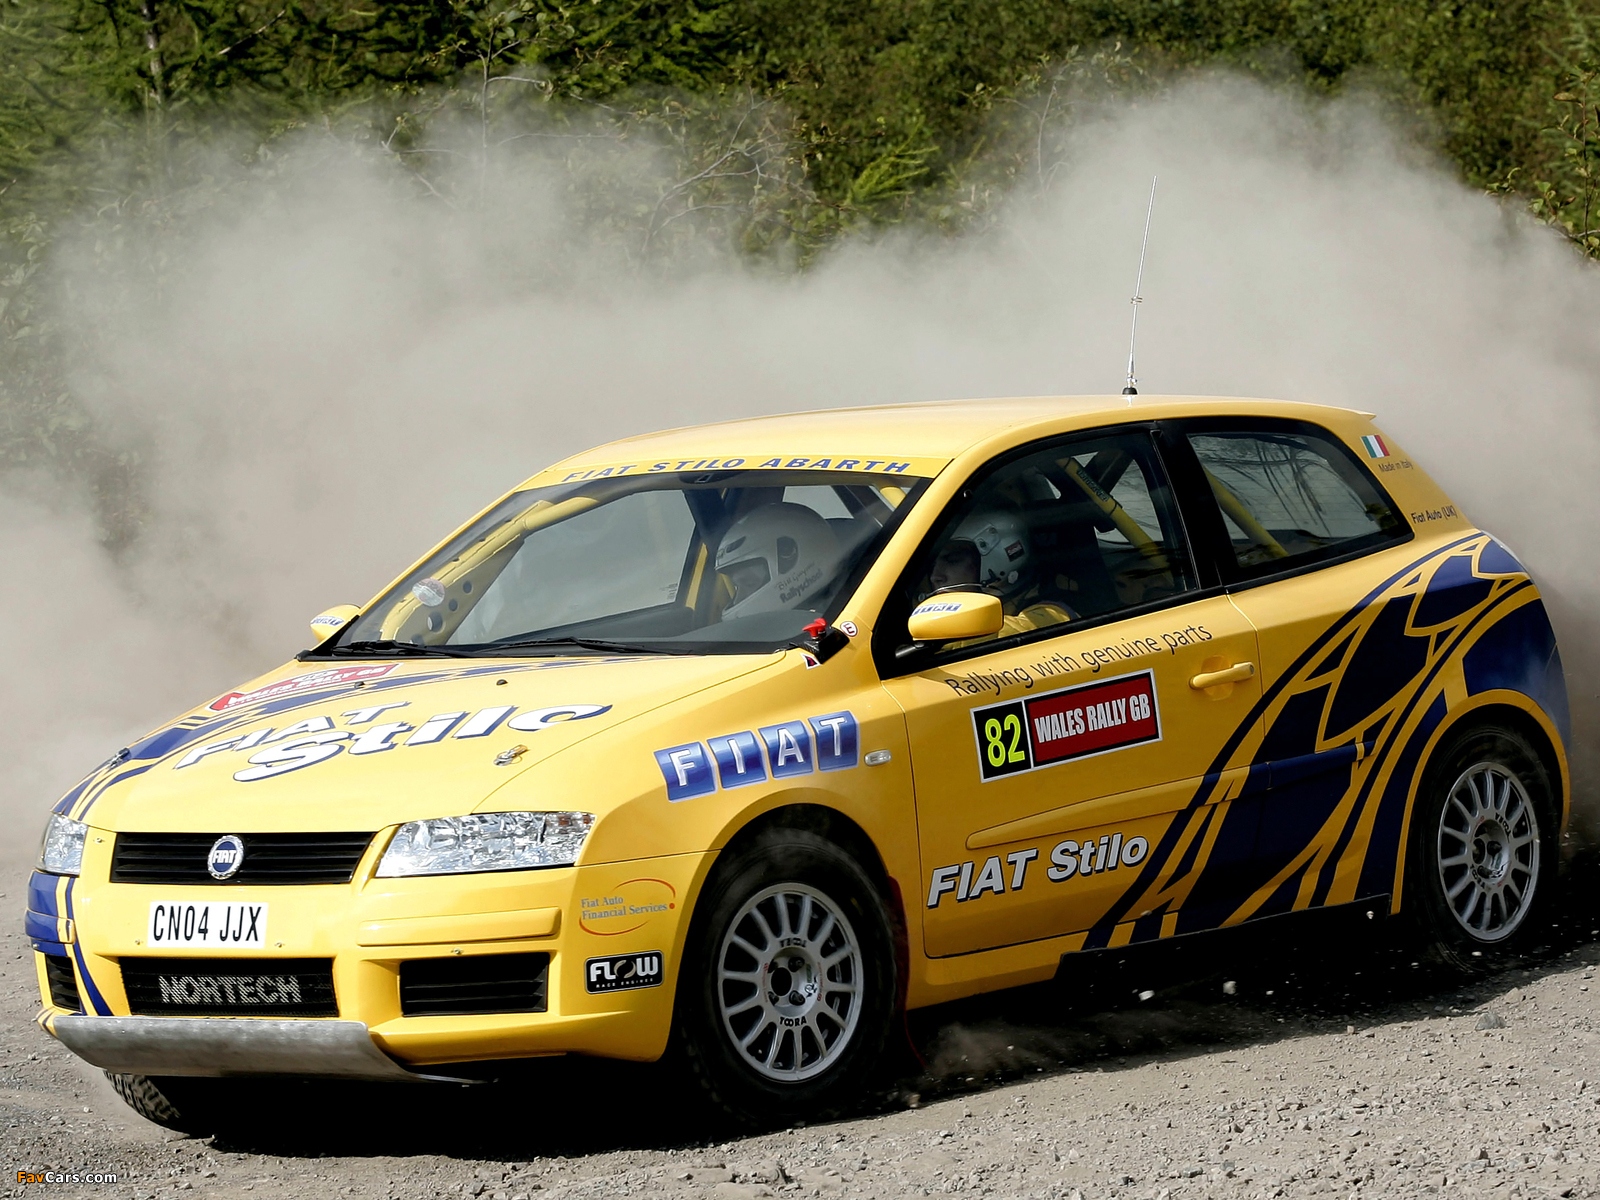 Images Of Fiat Stilo Abarth Rally 192 2002 2005 1600x1200